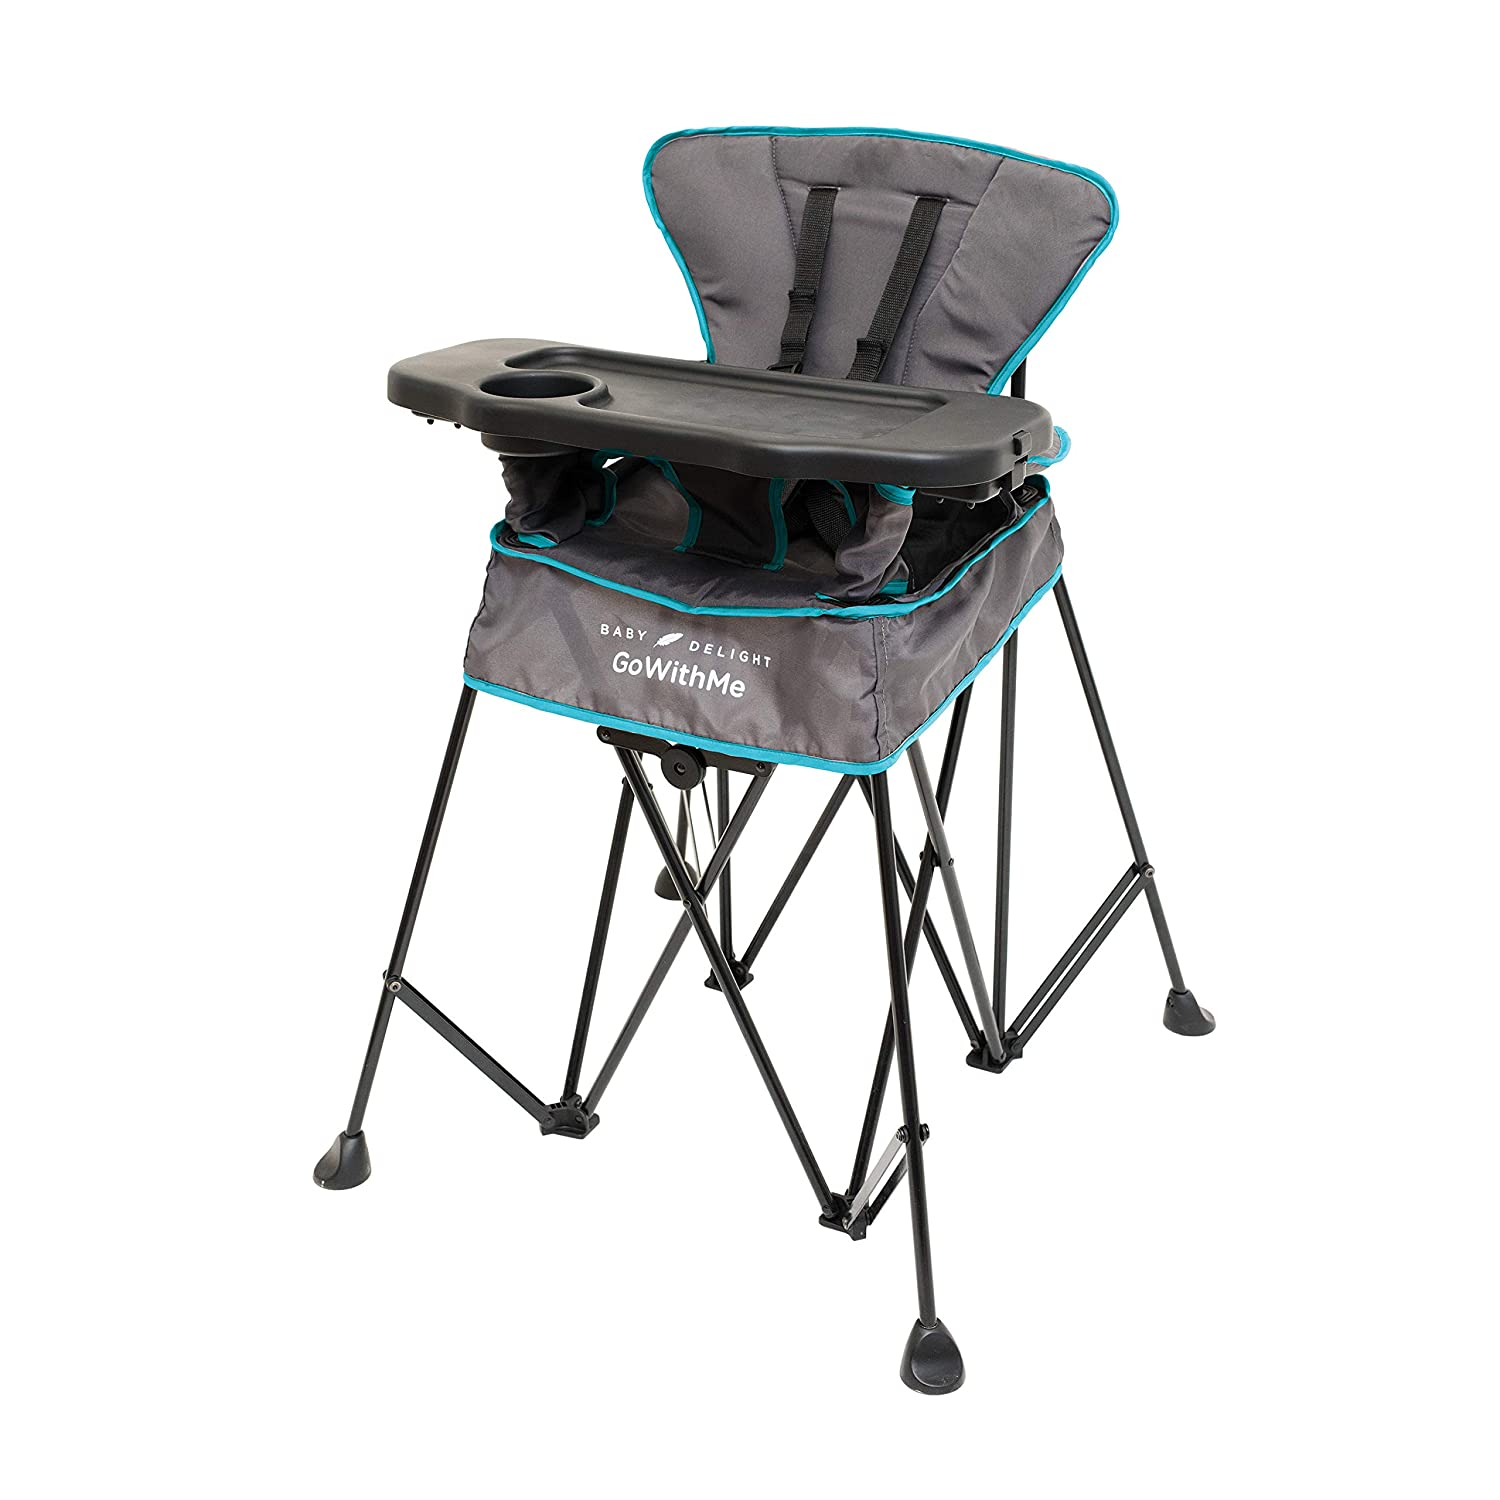 Baby Delight Go with Me Deluxe Portable High Chair